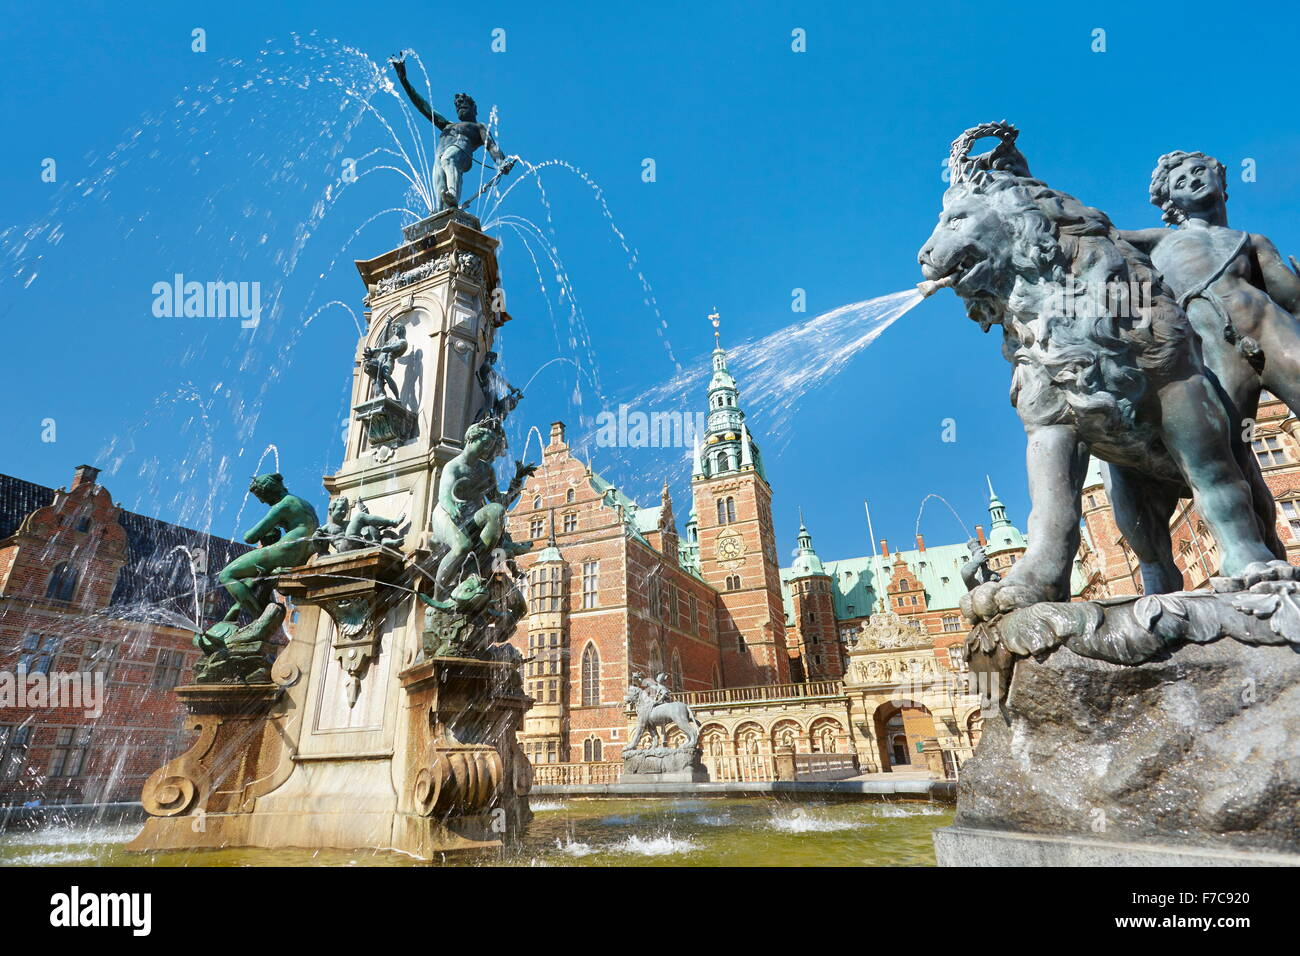 Neptune Fountain at Frederiksborg Palace, Hillerad, Denmark - Stock Image